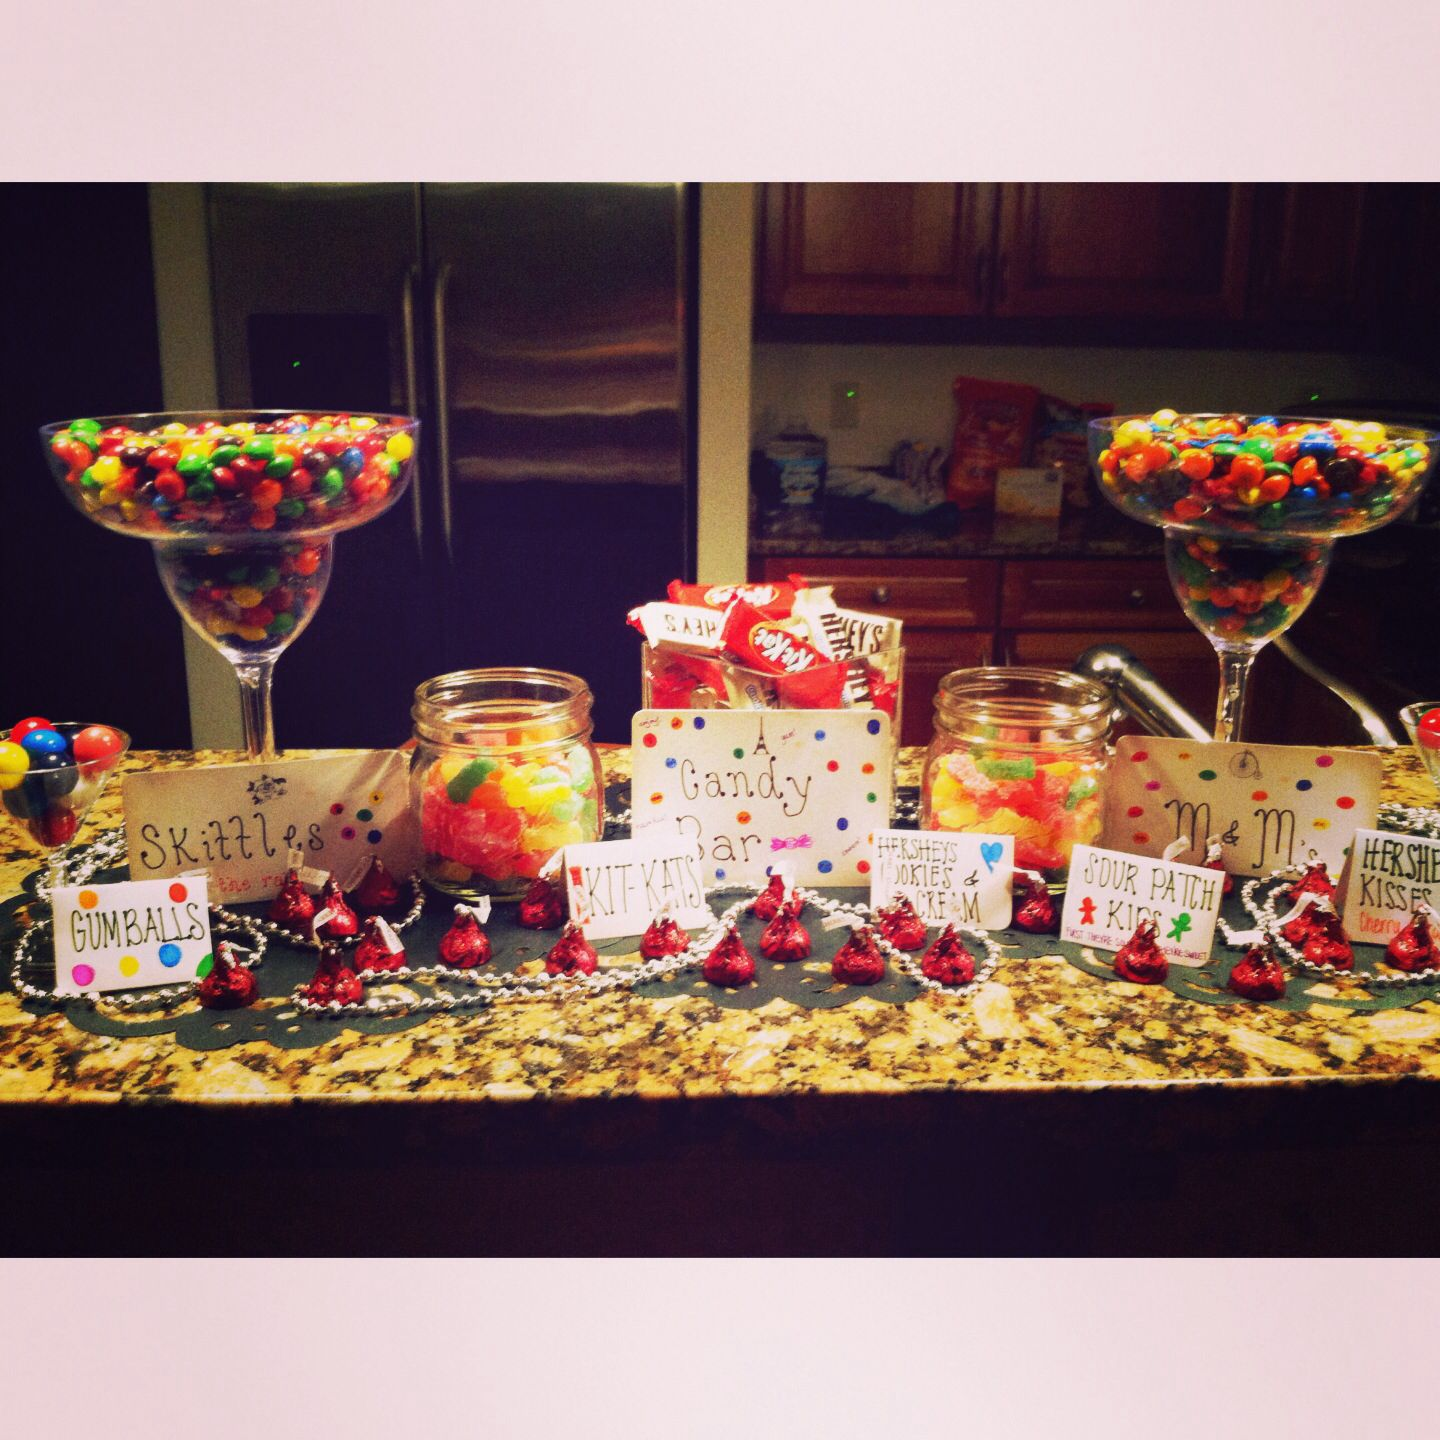 candy bar i did at my 21st birthday party! picture credit @ana rose